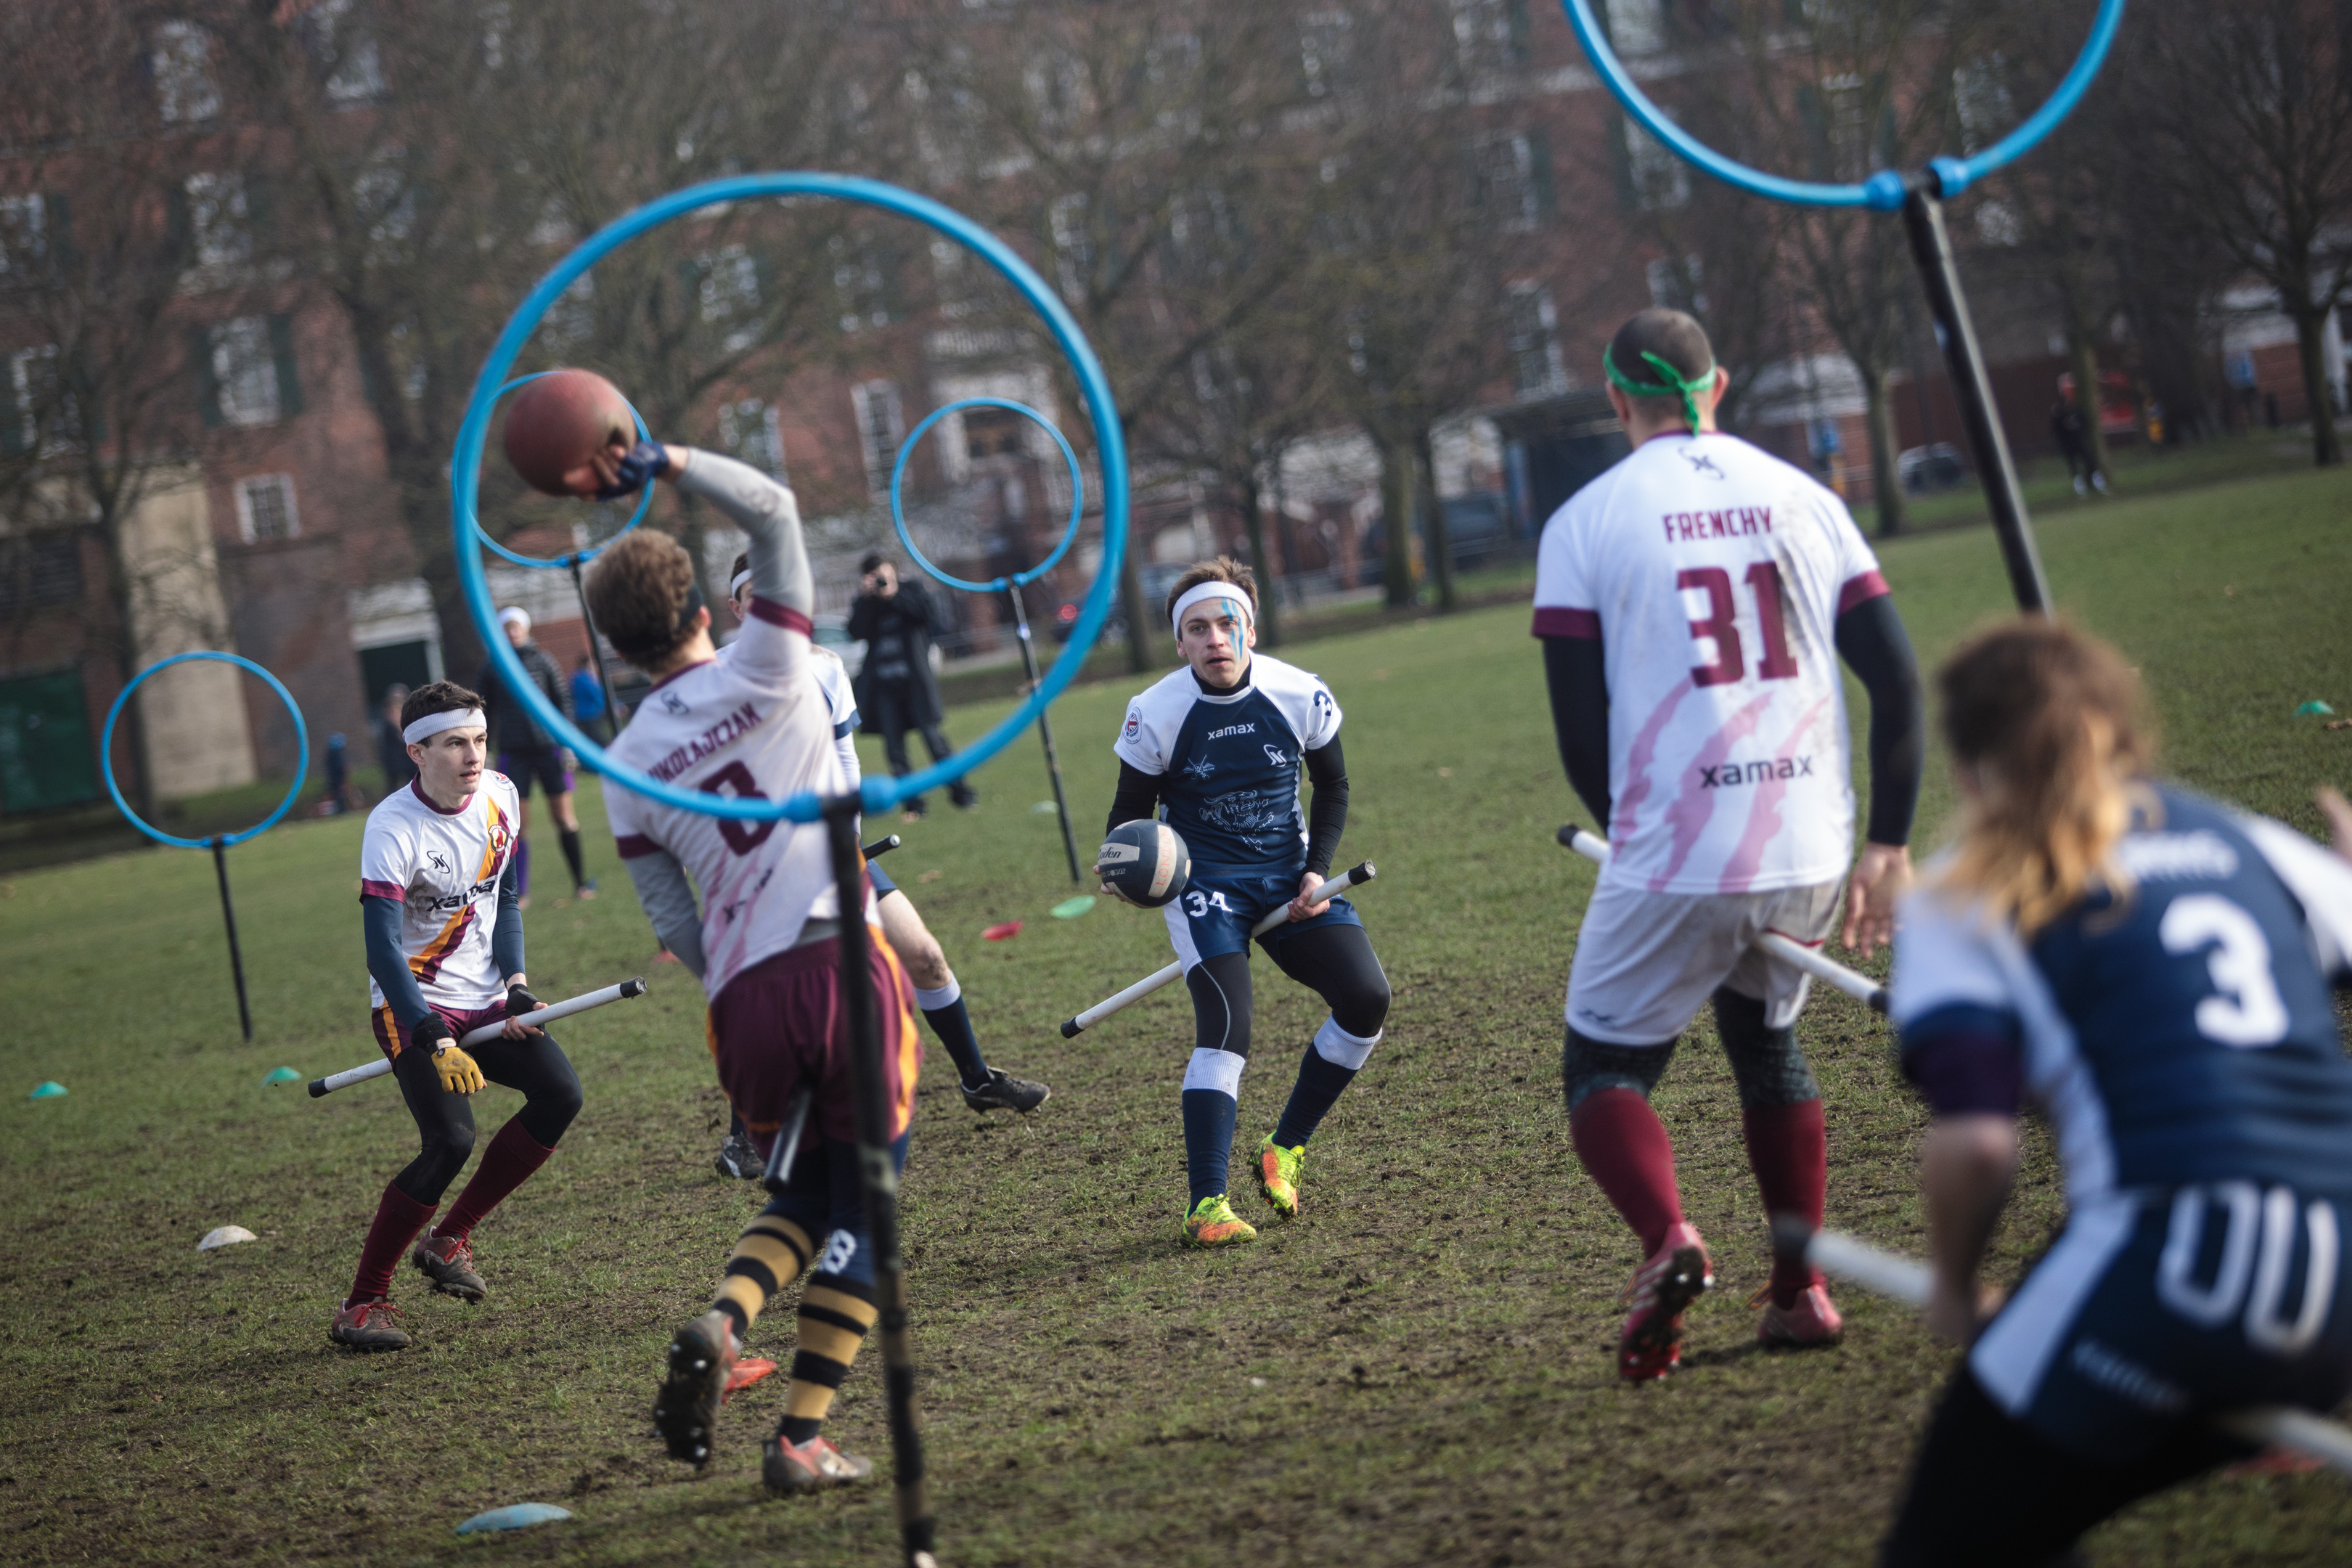 Aberdeen students are setting up a quidditch tournament.